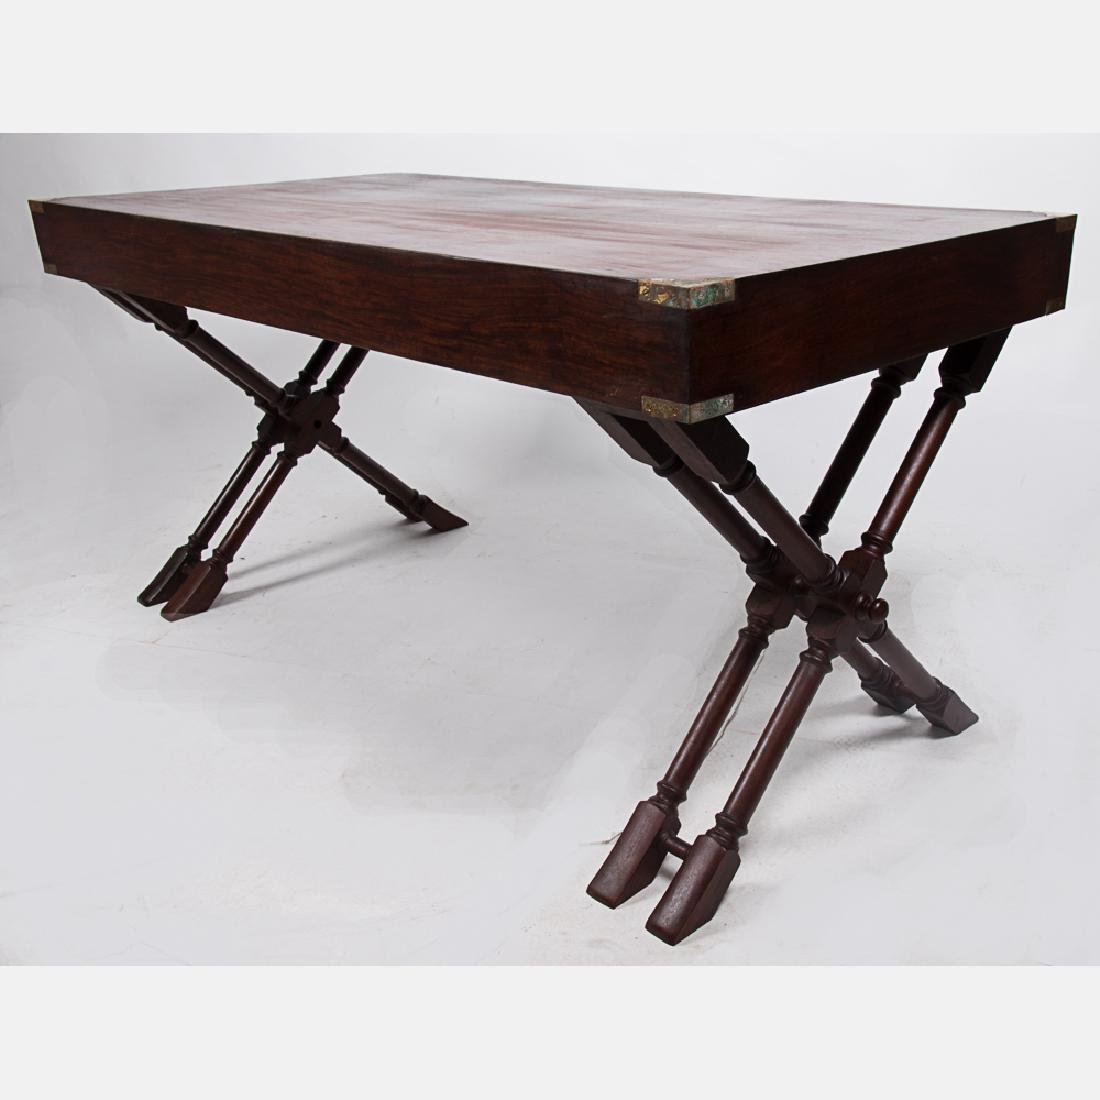 A Campaign Style Mahogany and Brass Desk, 20th Century. - 2